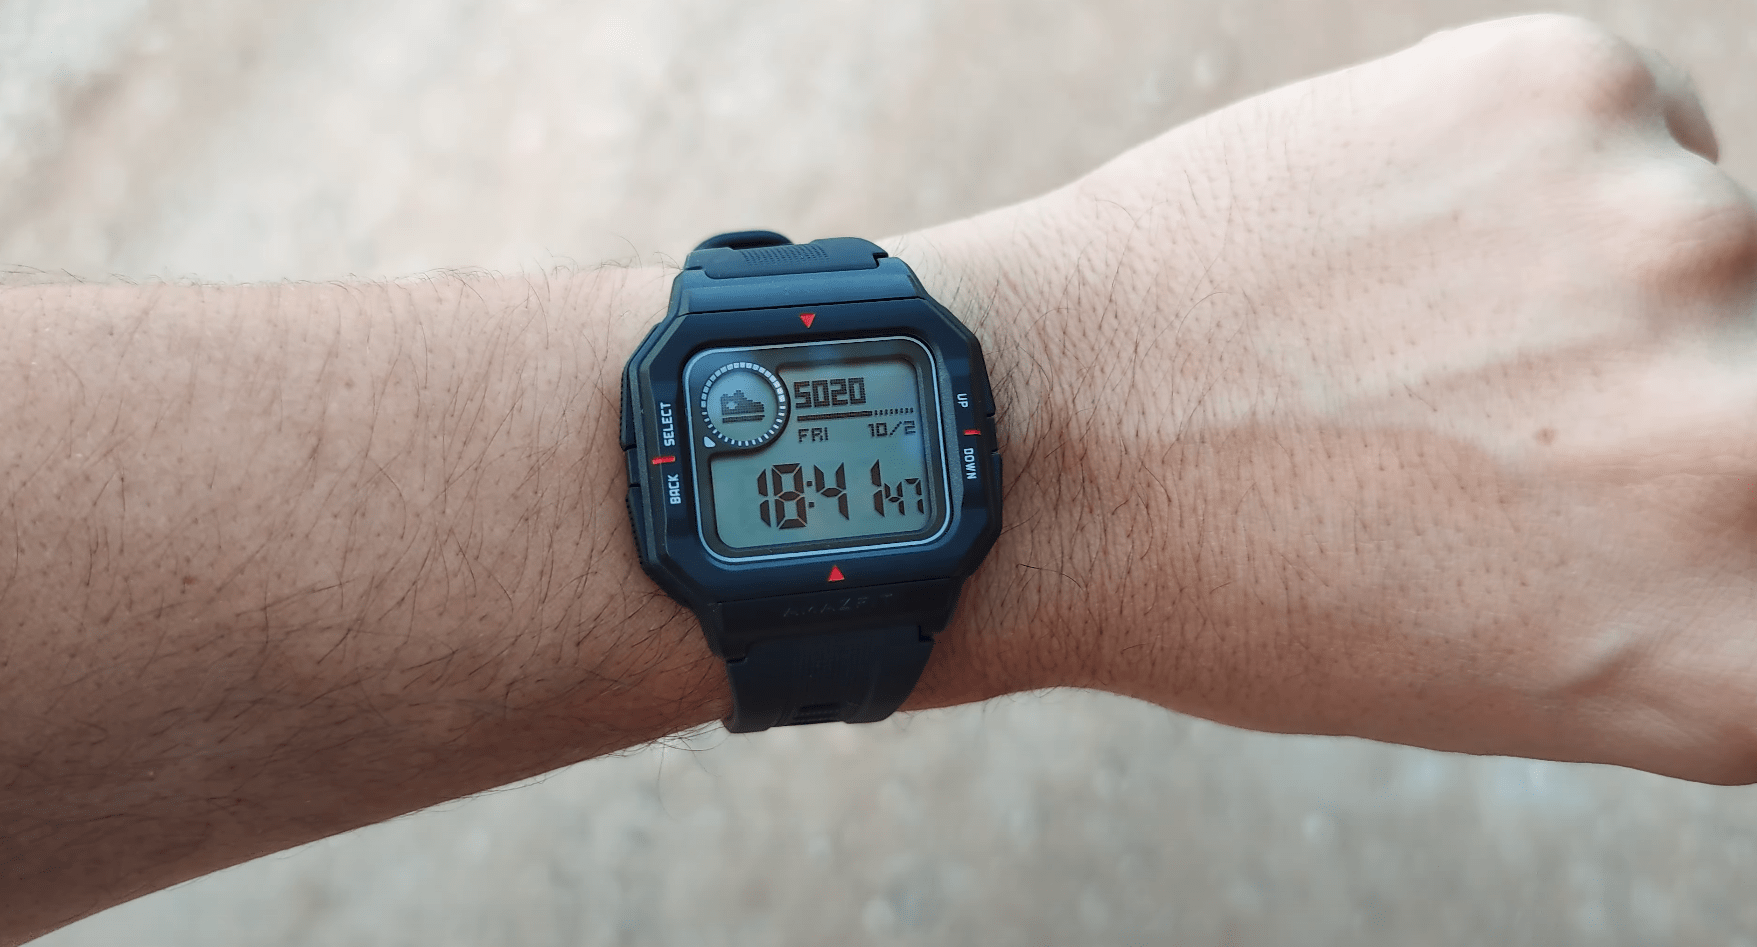 AmazFit Neo – Steps Tracking